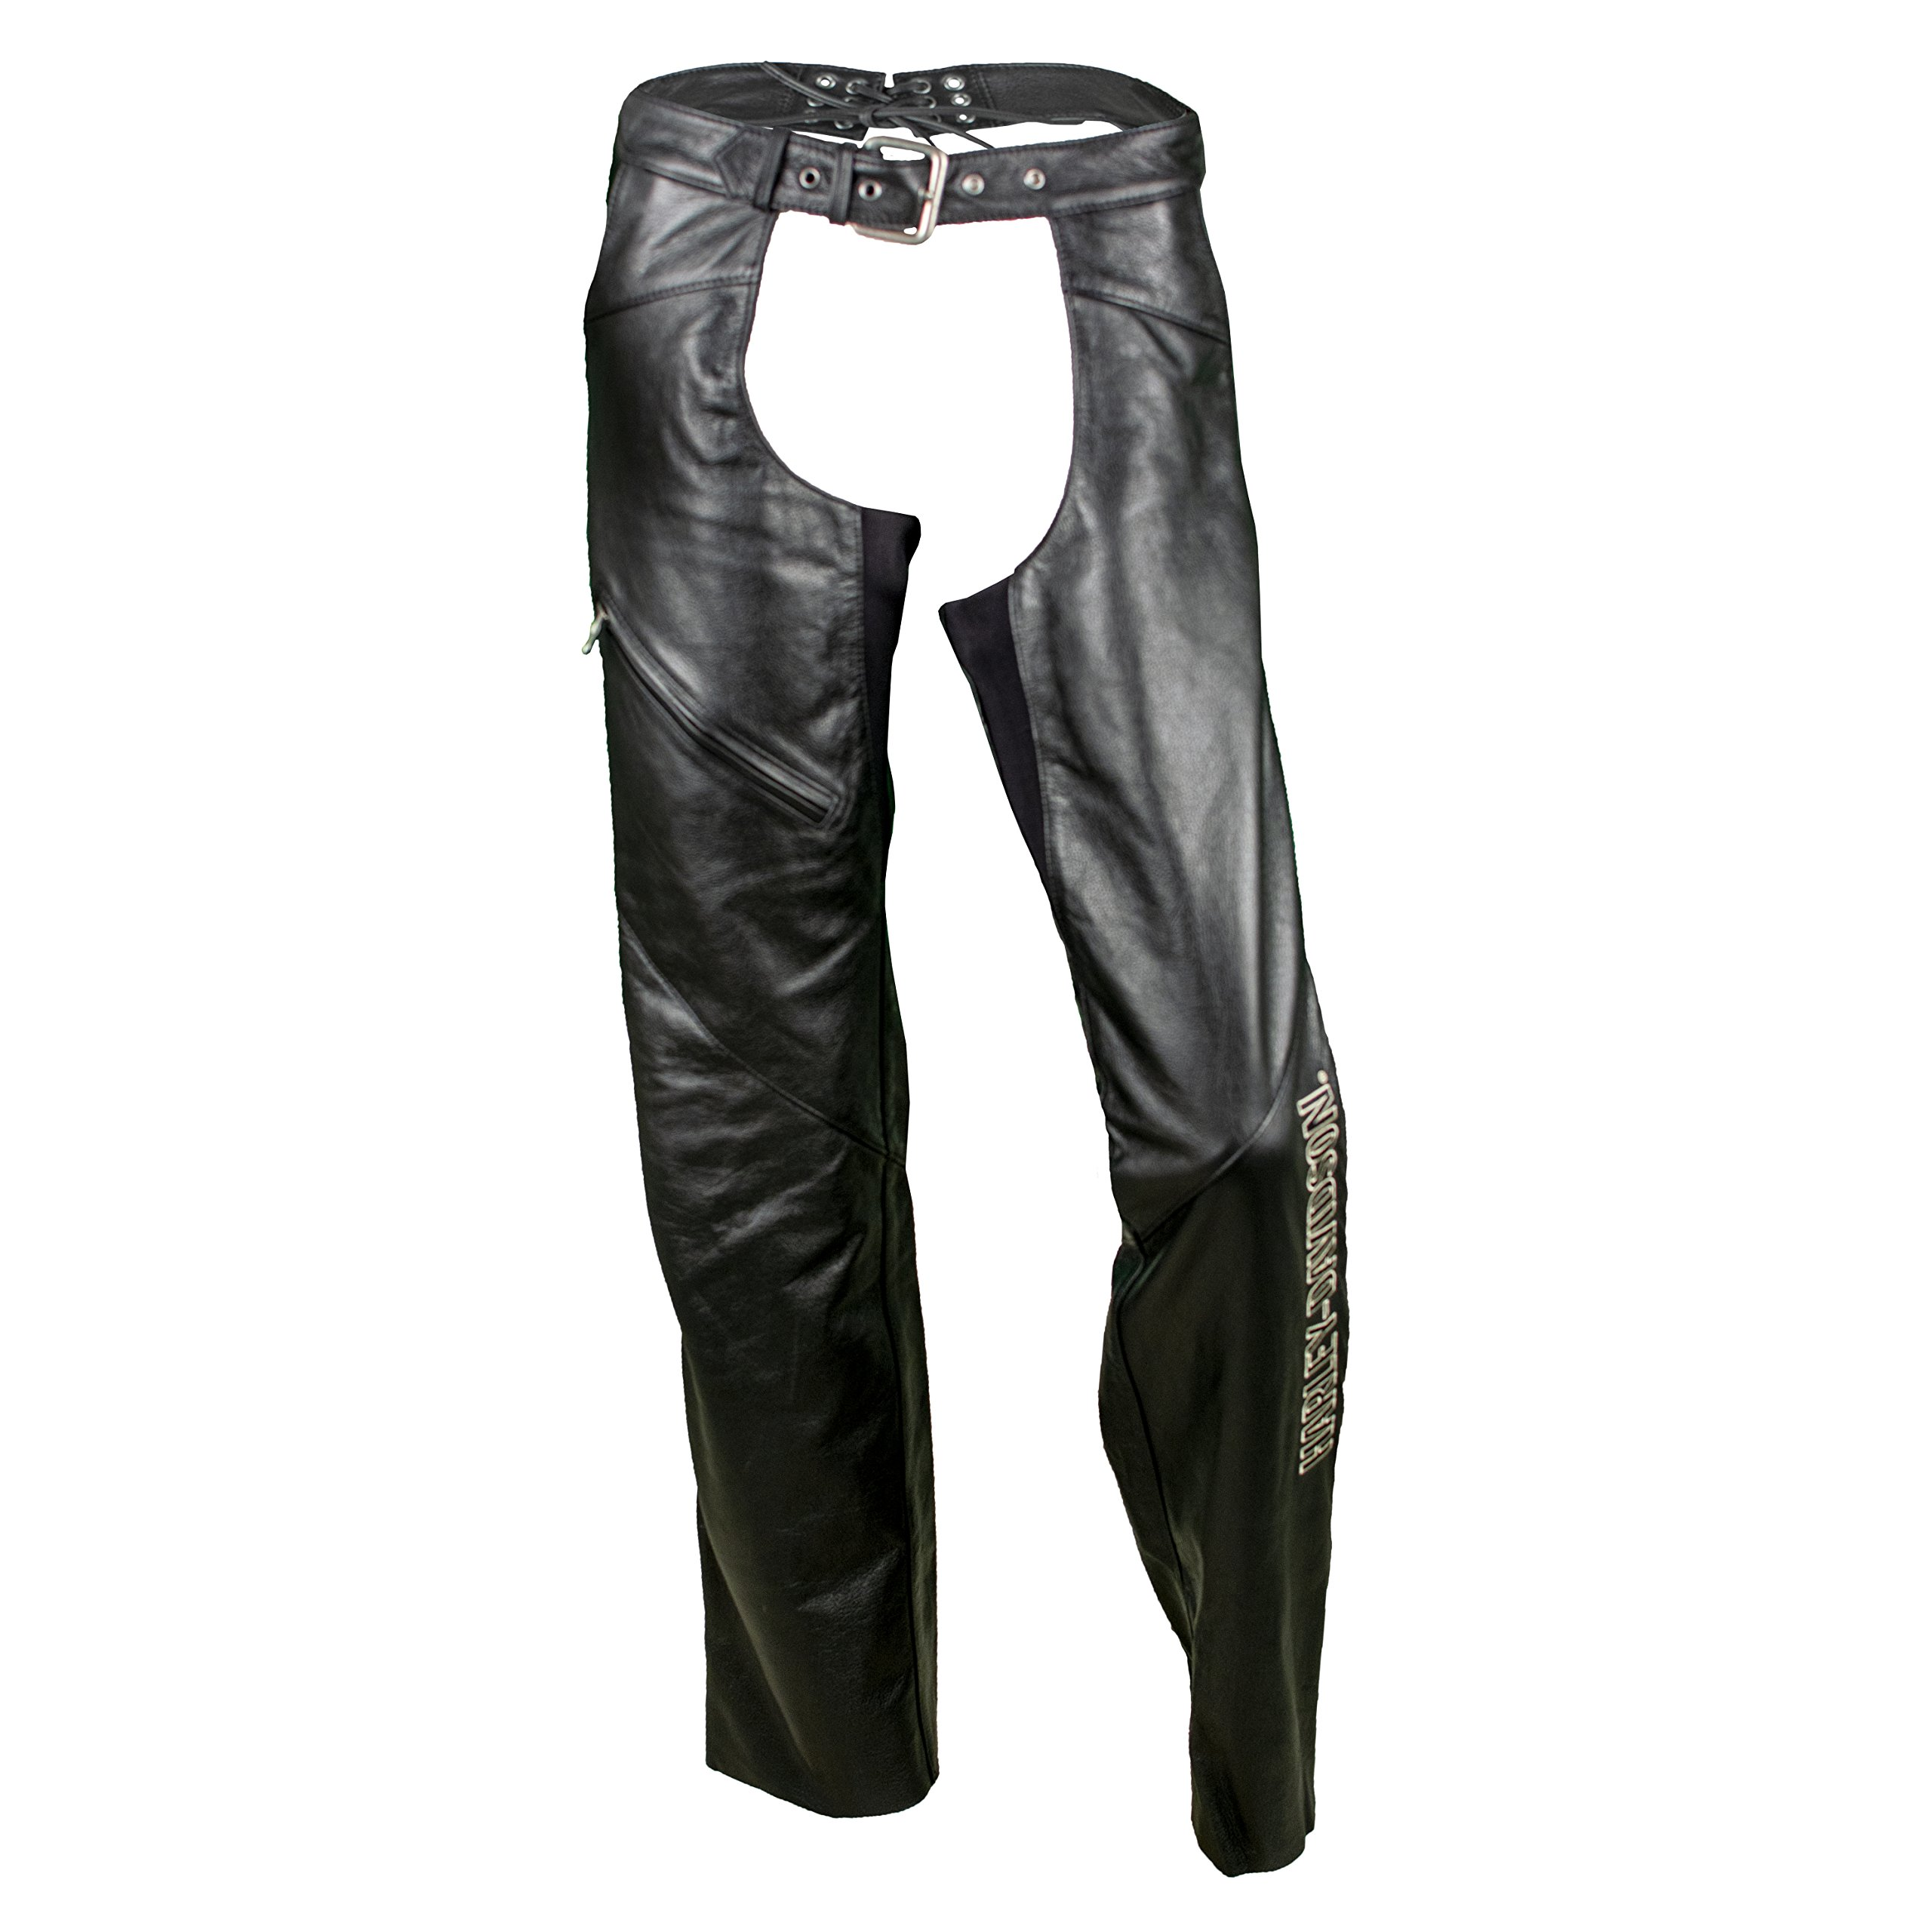 Harley-Davidson Women's Deluxe Leather Motorcycle Chaps 98097-06VW (Medium)